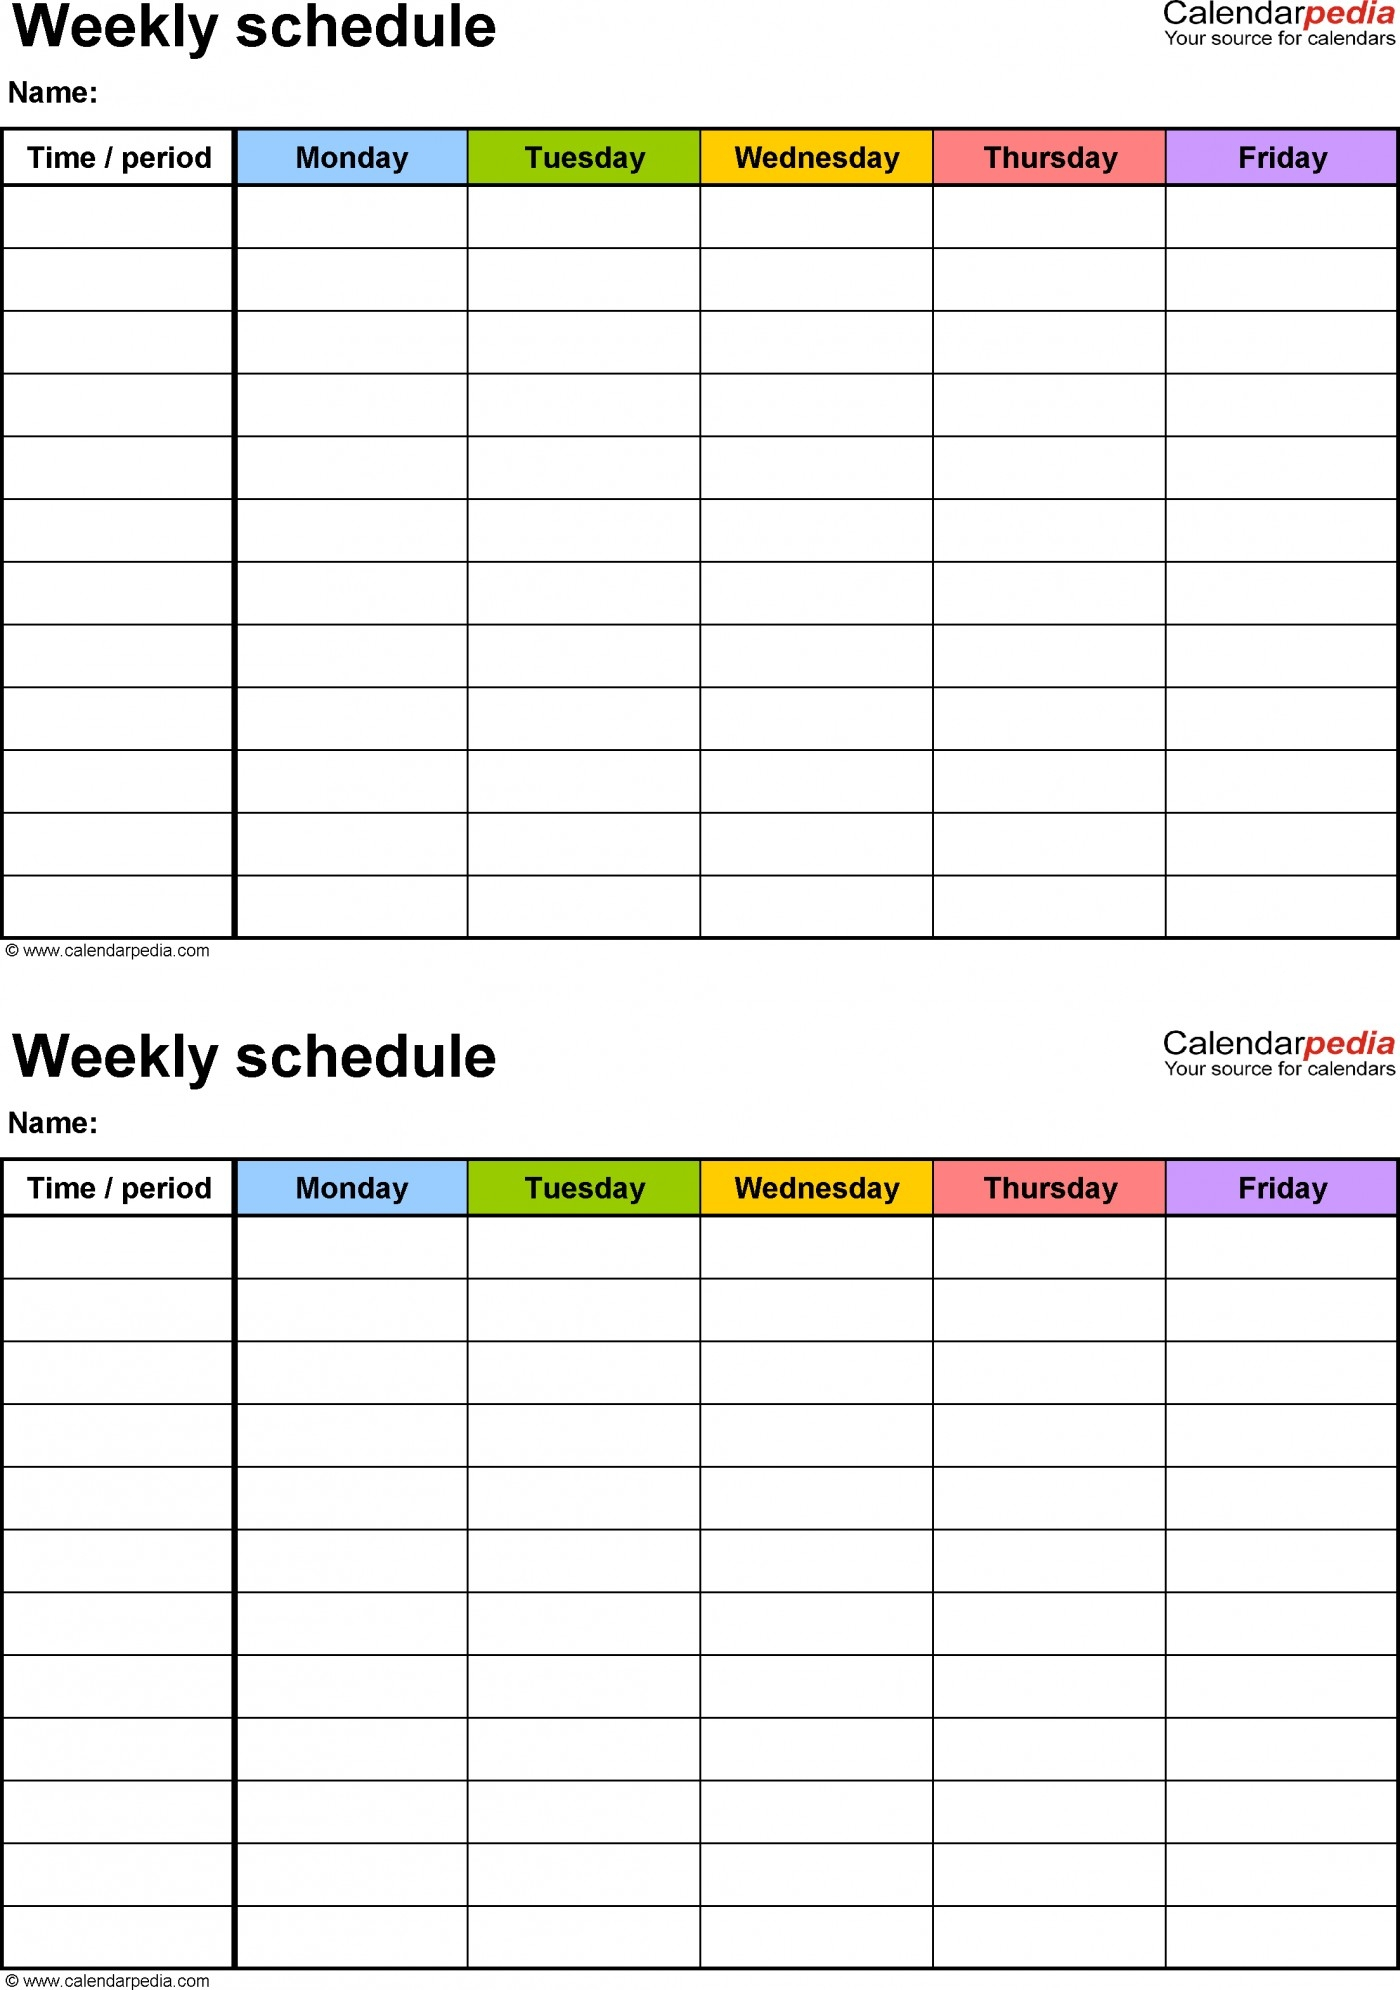 037 Sign Up Sheet Template Excel Free Weekly Schedule-Sign Calendar Sign Up Sheet Template